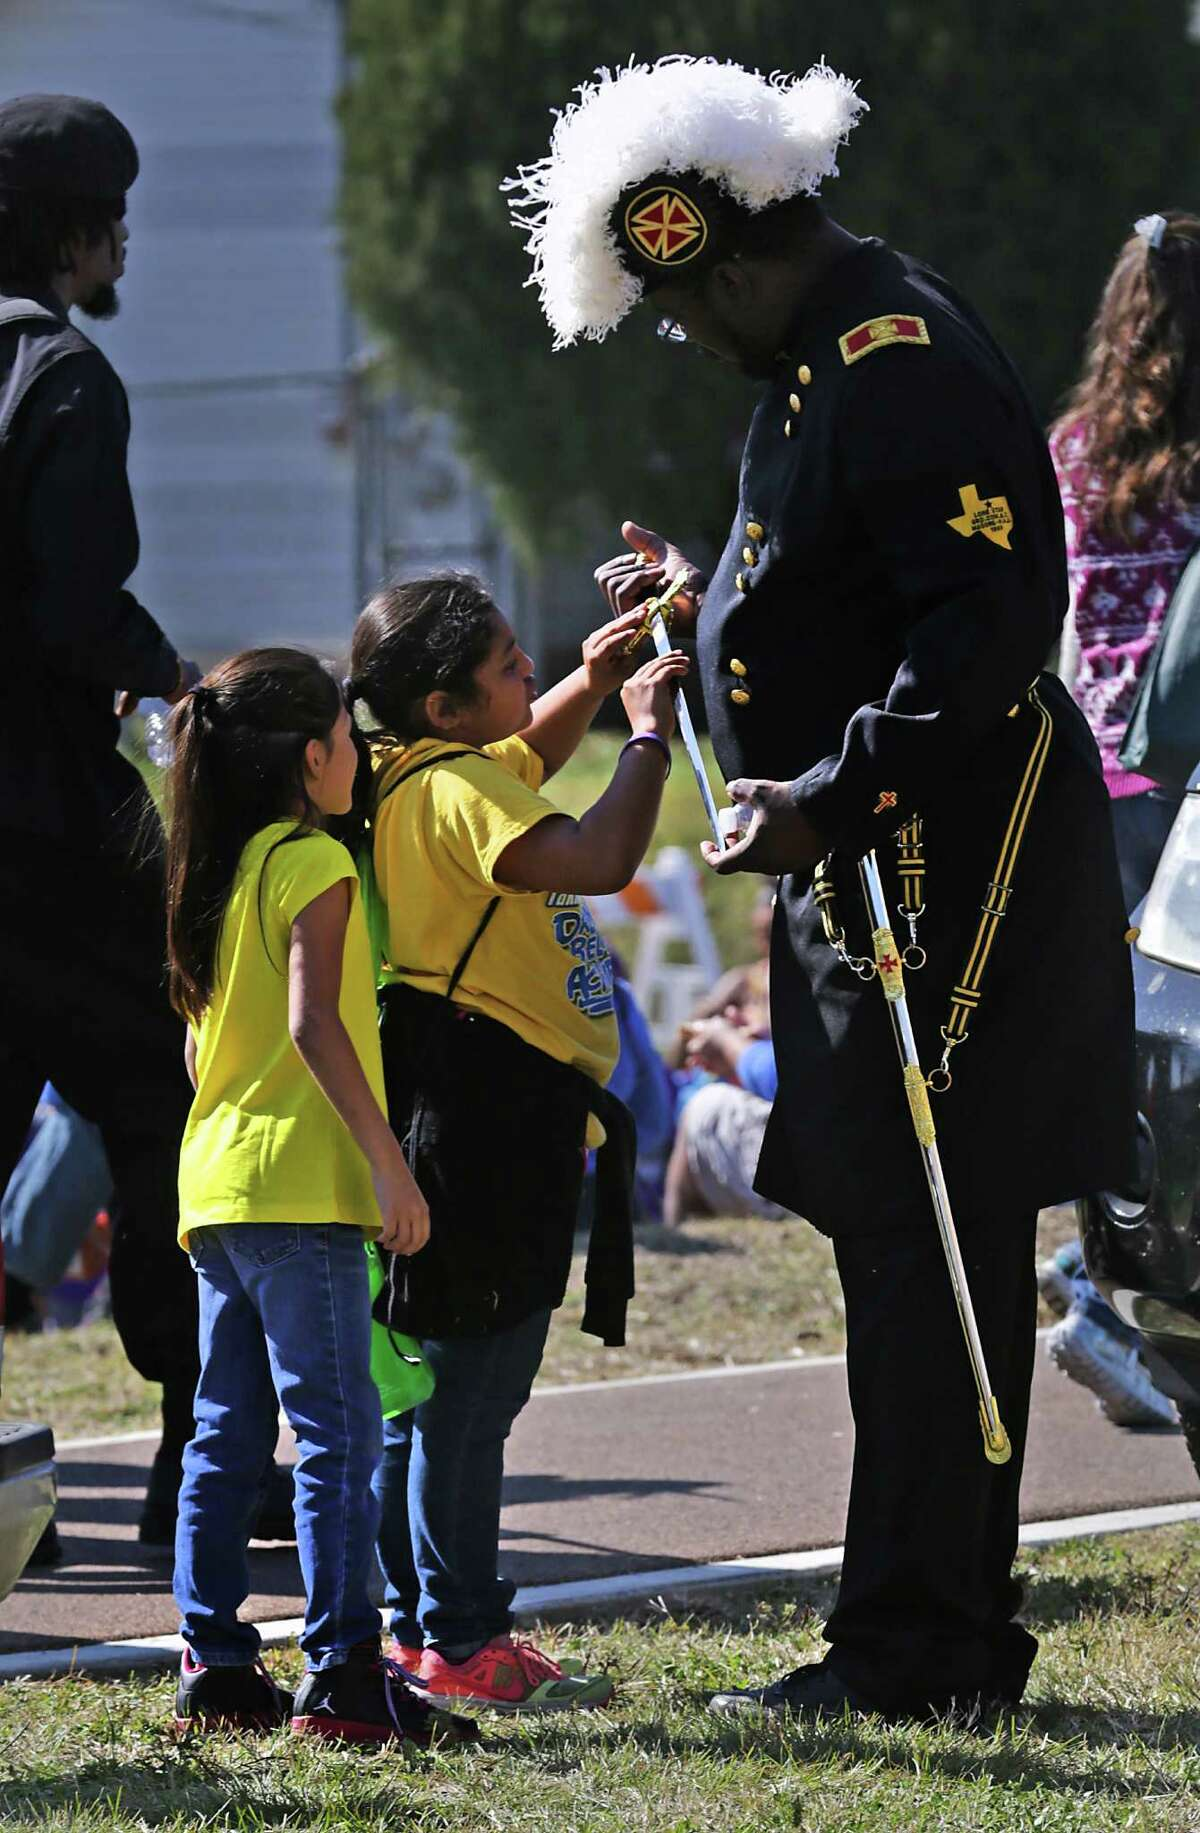 Clary Glover, right, a member of the Knights Templar Alamo Commandry #7 gives Leahlani Huerta, 8, center, and Monica Aguuilar, 9, a close look at his ceremonial saber at the end of the 2016 Martin Luther King Jr March before the Commemorative Program at Pittmann-Sullivan Park on Monday, Jan. 18, 2016.